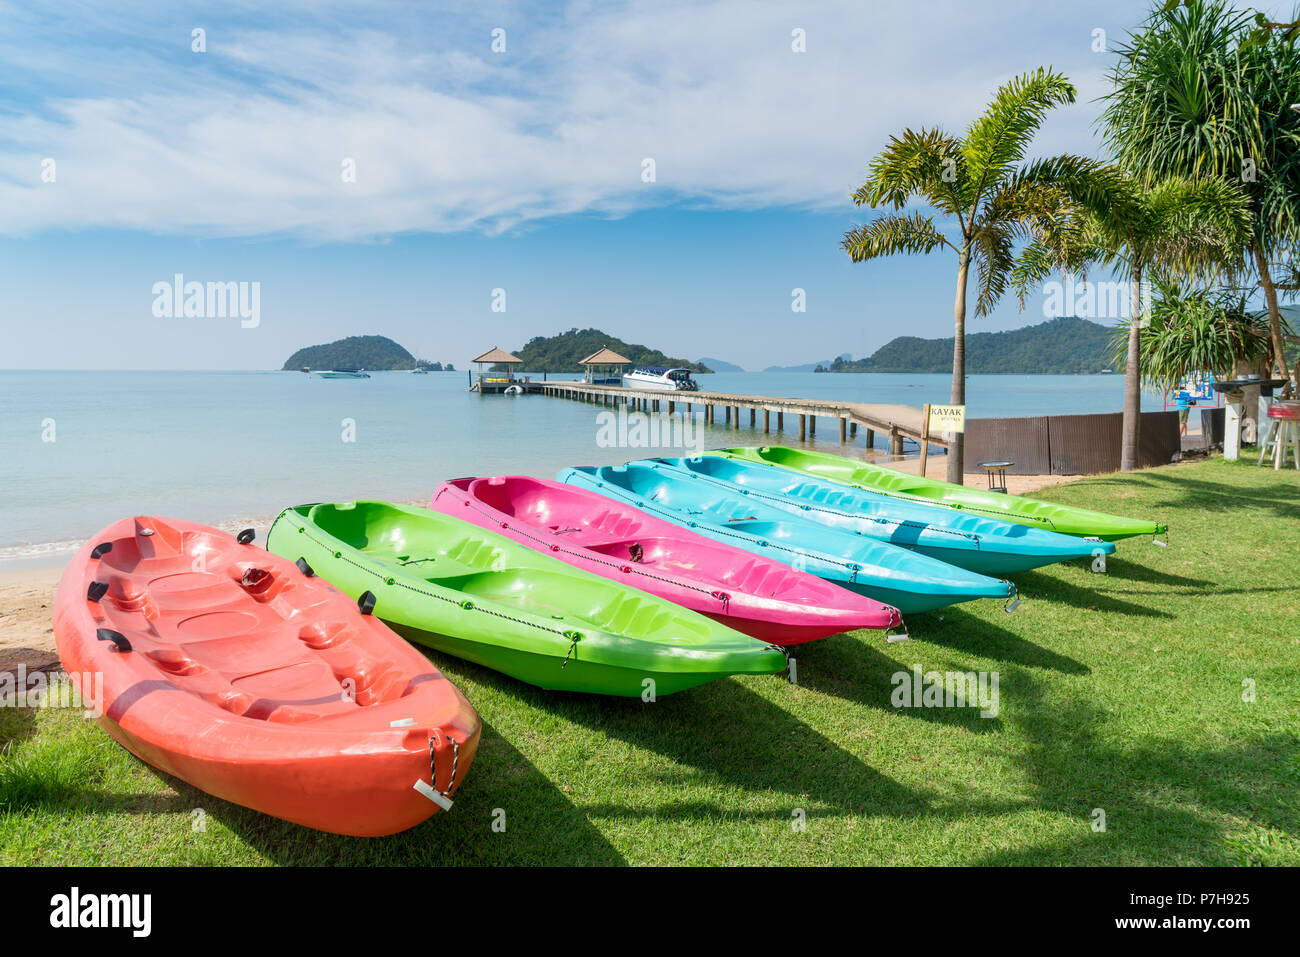 Colorful kayaks on the tropical beach in Phuket, Thailand. Summer, Vacation and Travel concept. - Stock Image